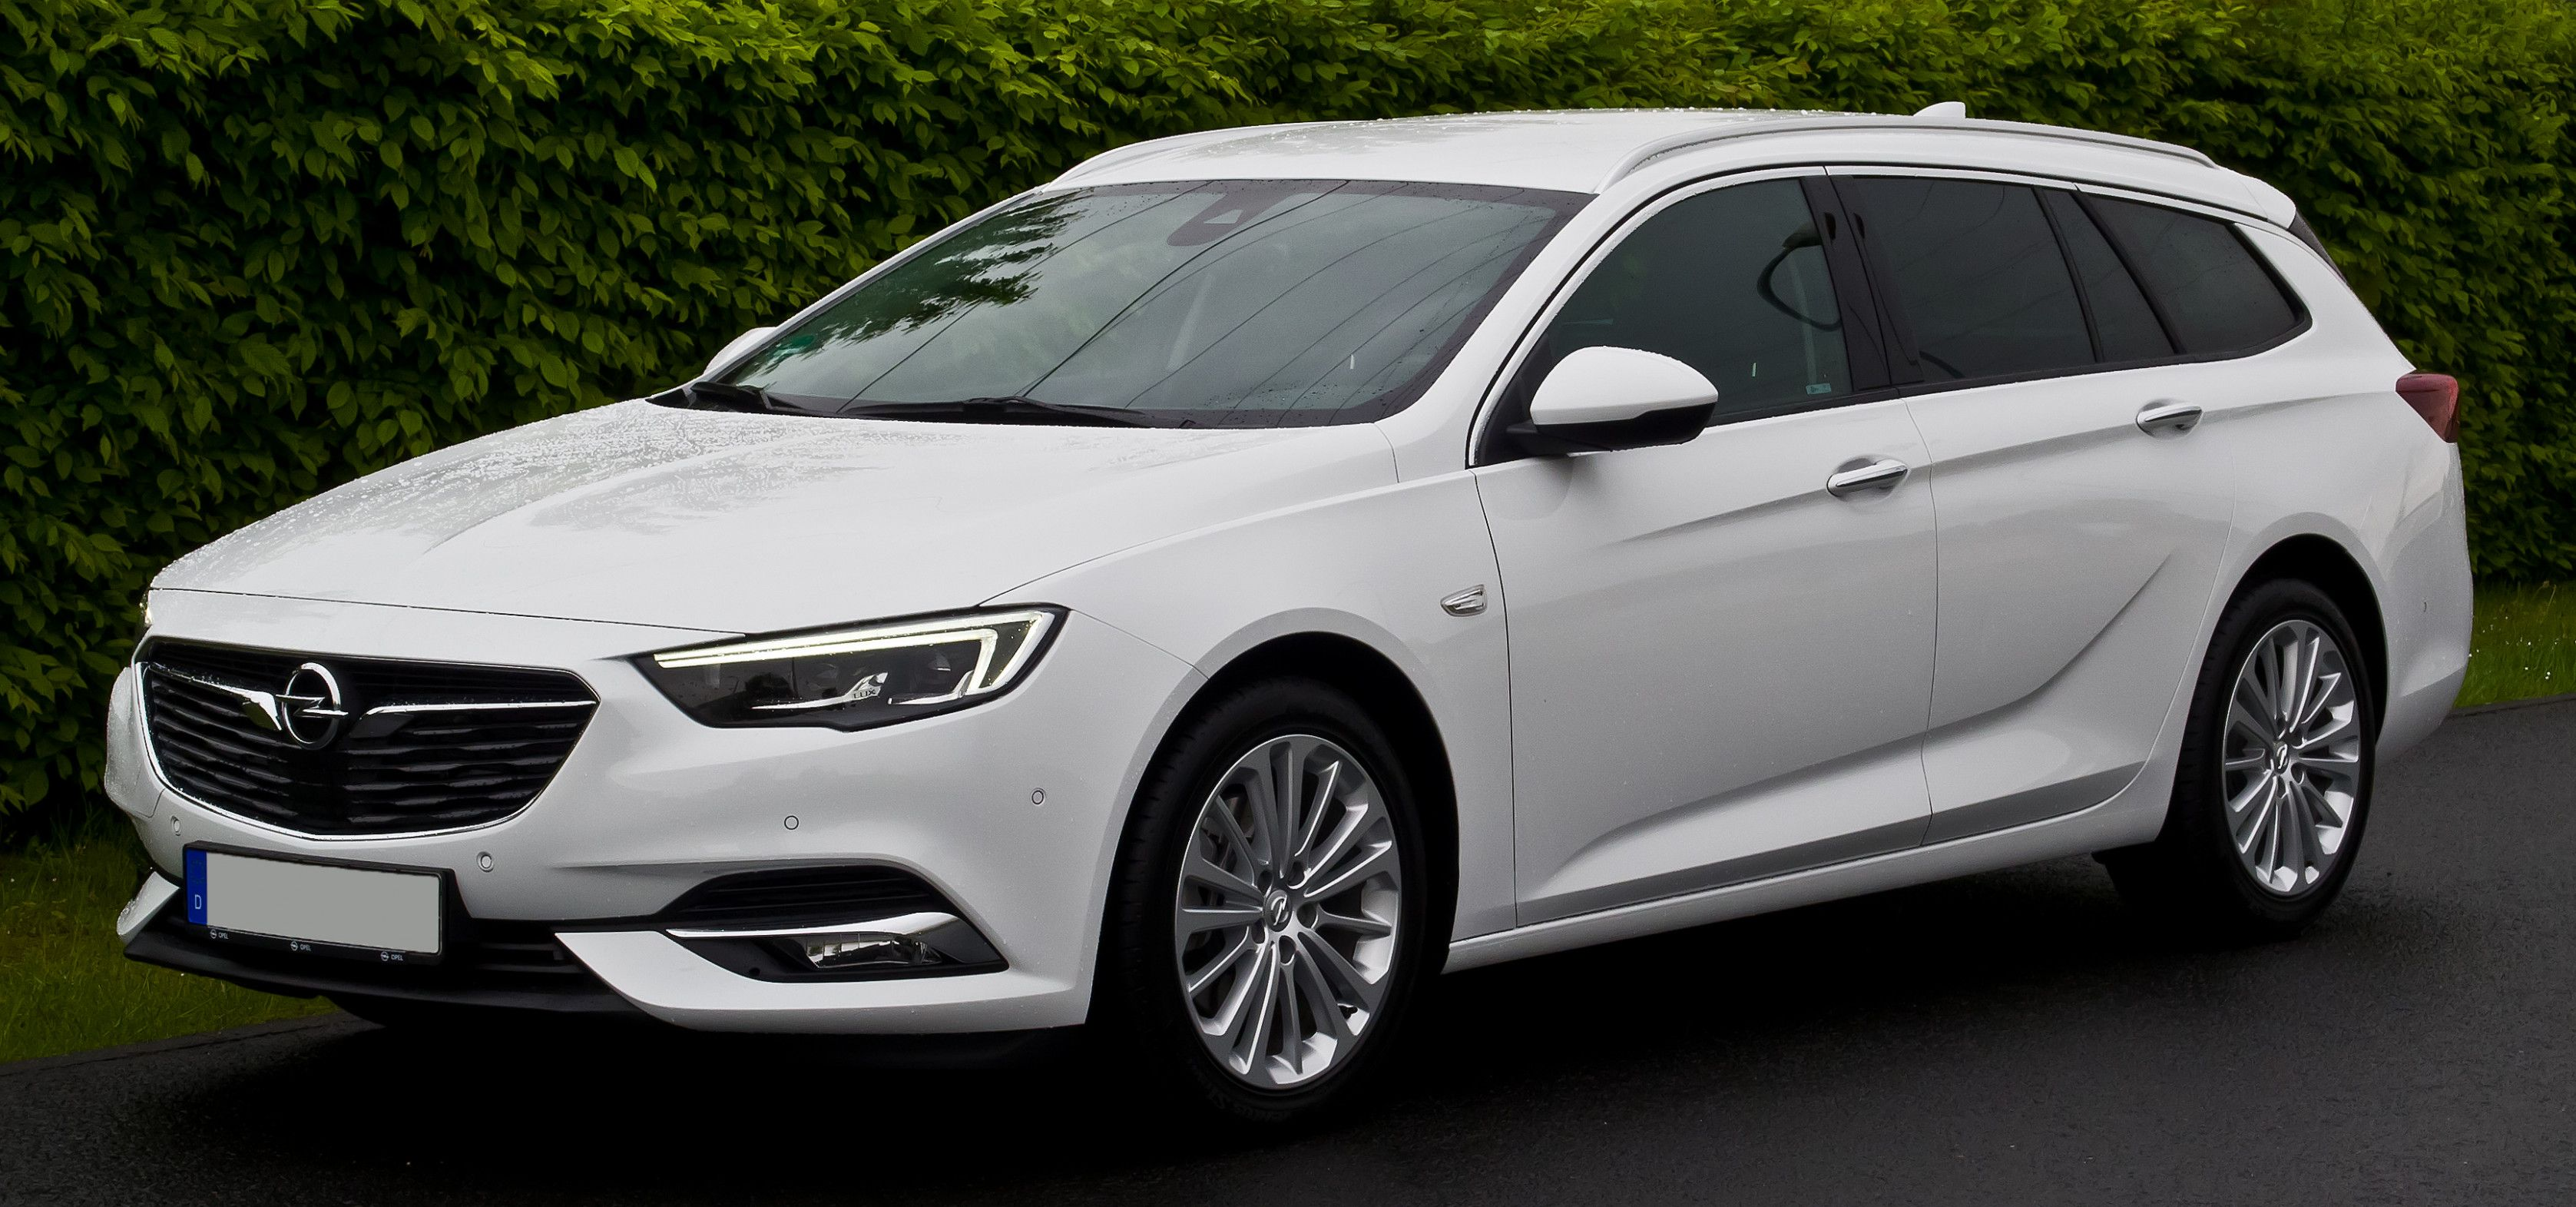 Opel Insignia 2020 Price In Europe Rumors Opel Insignia 2020 Price In Europe Delightful For You To Our Website In This Particular Time I Am Europe Photos Europe Europe Fashion